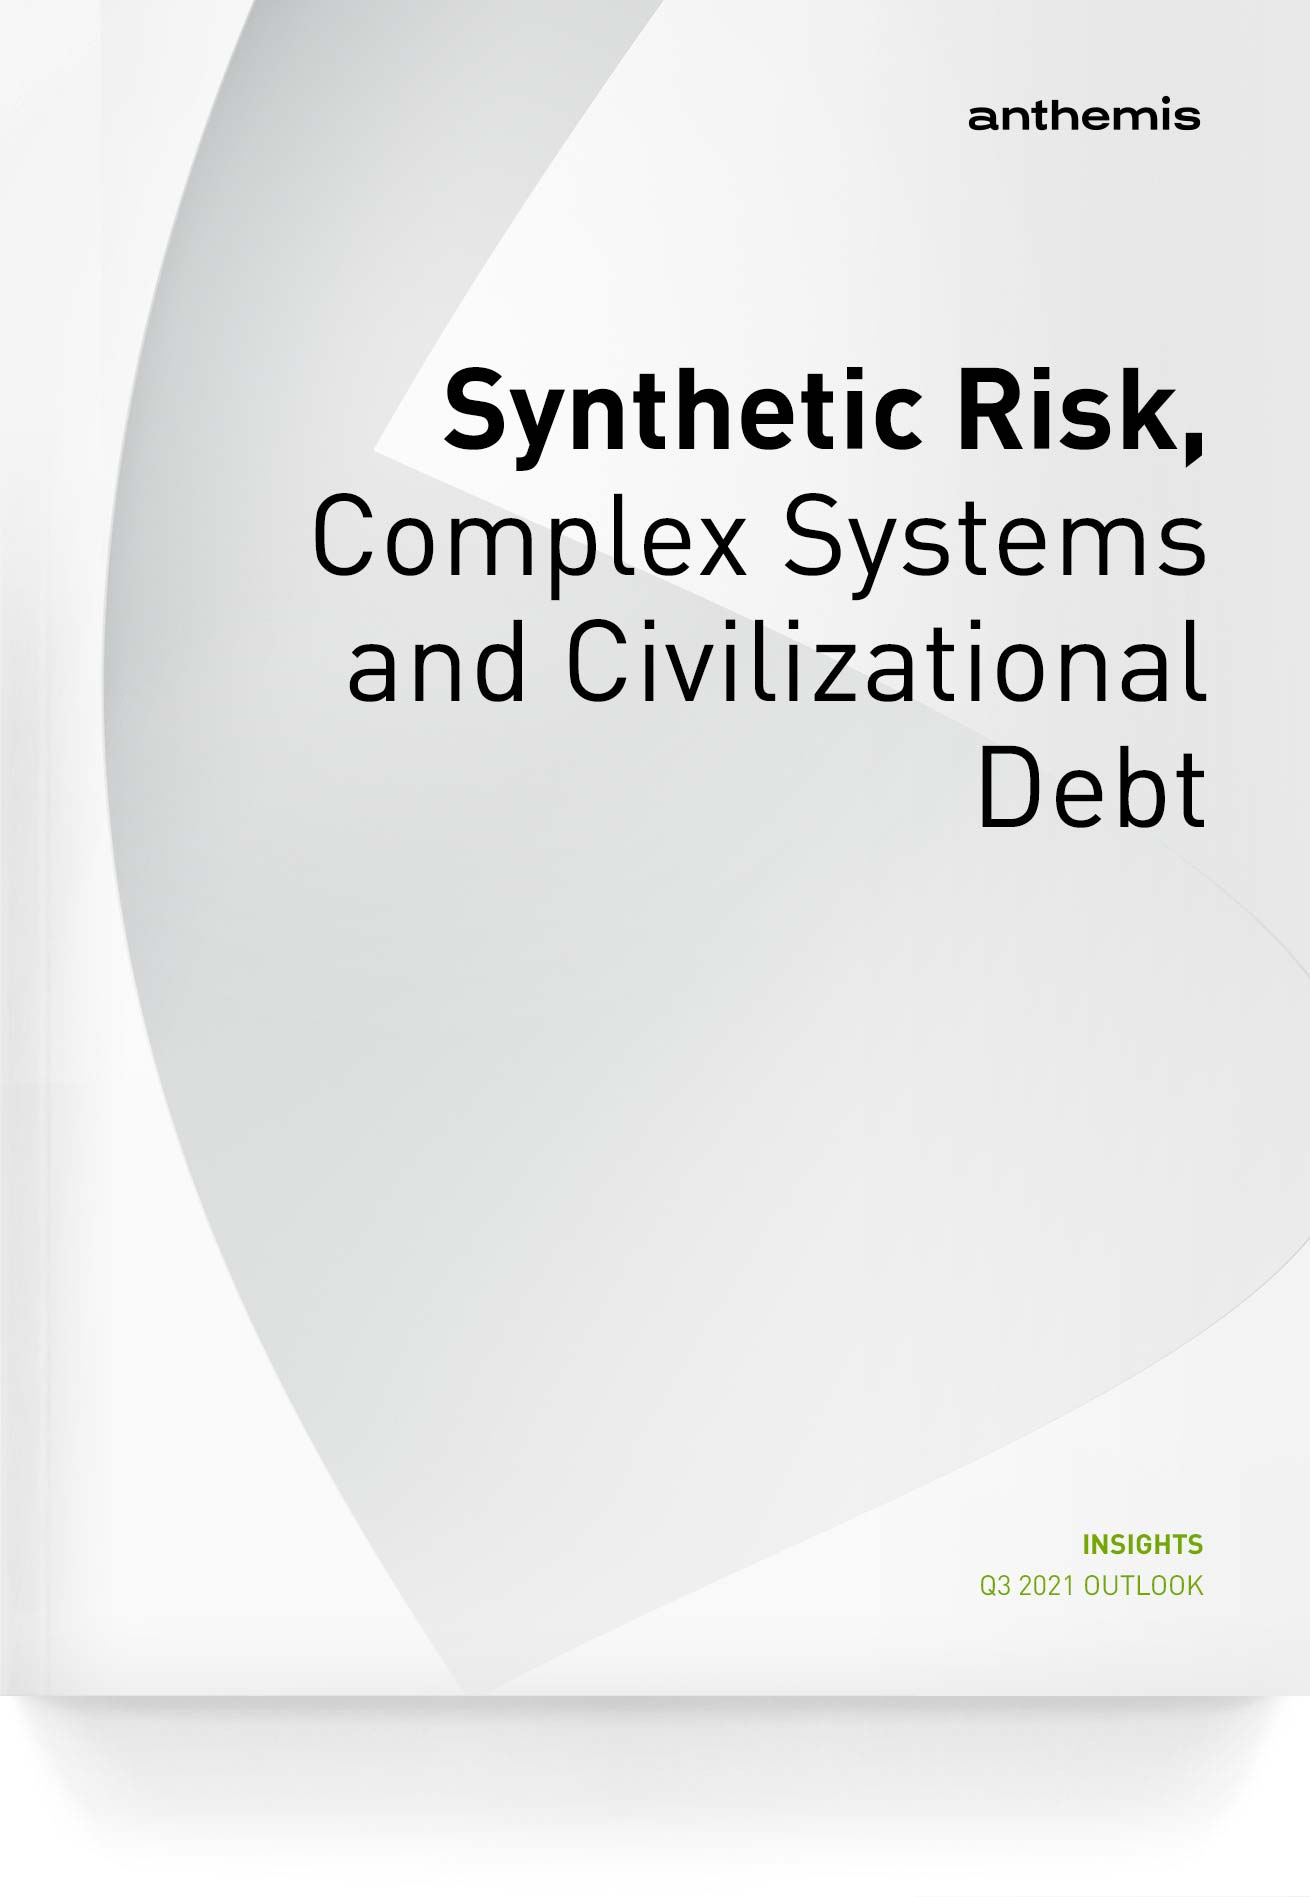 Quarterly-Insights-2021-Q3-Synthetic-Risk-Complex-Systems-and-Civilizational-Debt